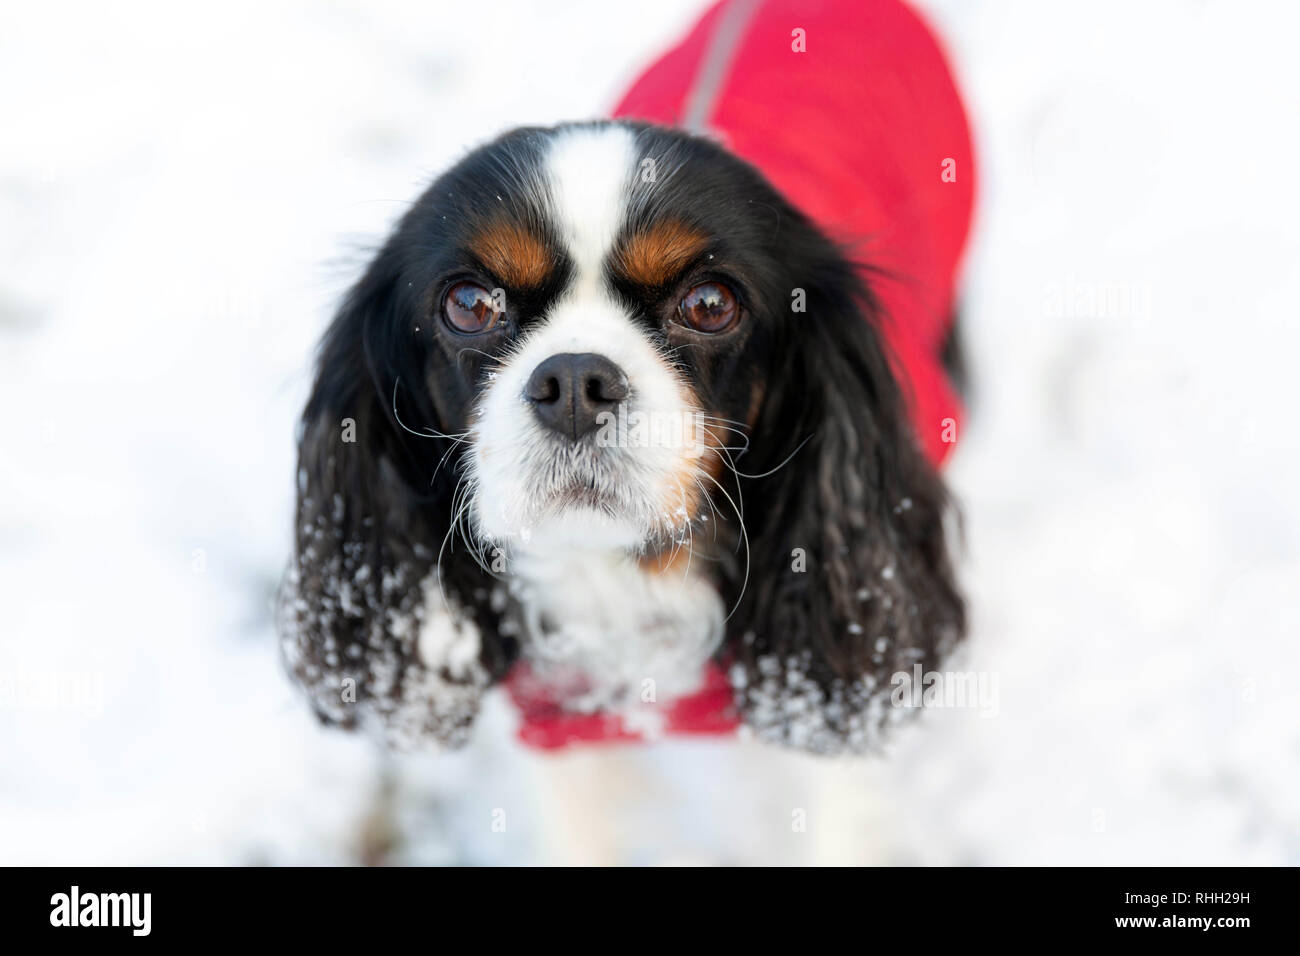 Cute dog on the snow, winter background Stock Photo